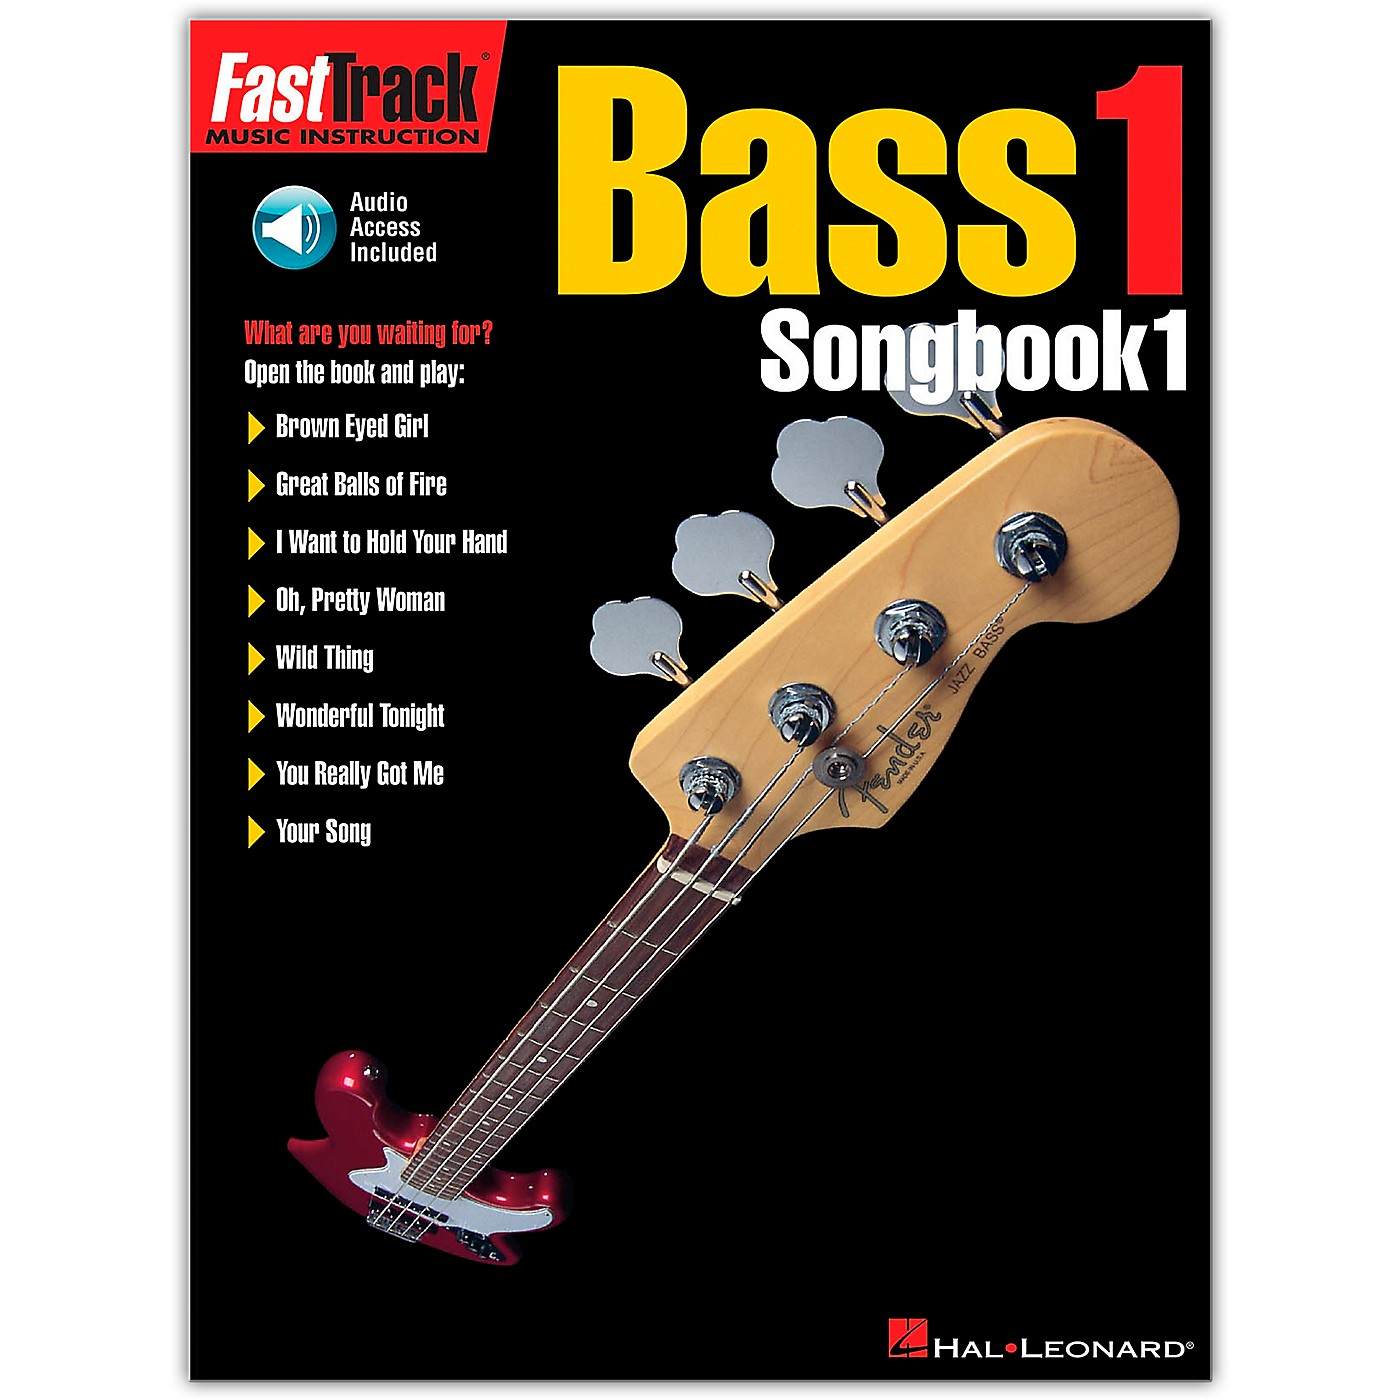 Hal Leonard FastTrack Bass Tab Songbook 1 (Book/Online Audio) thumbnail